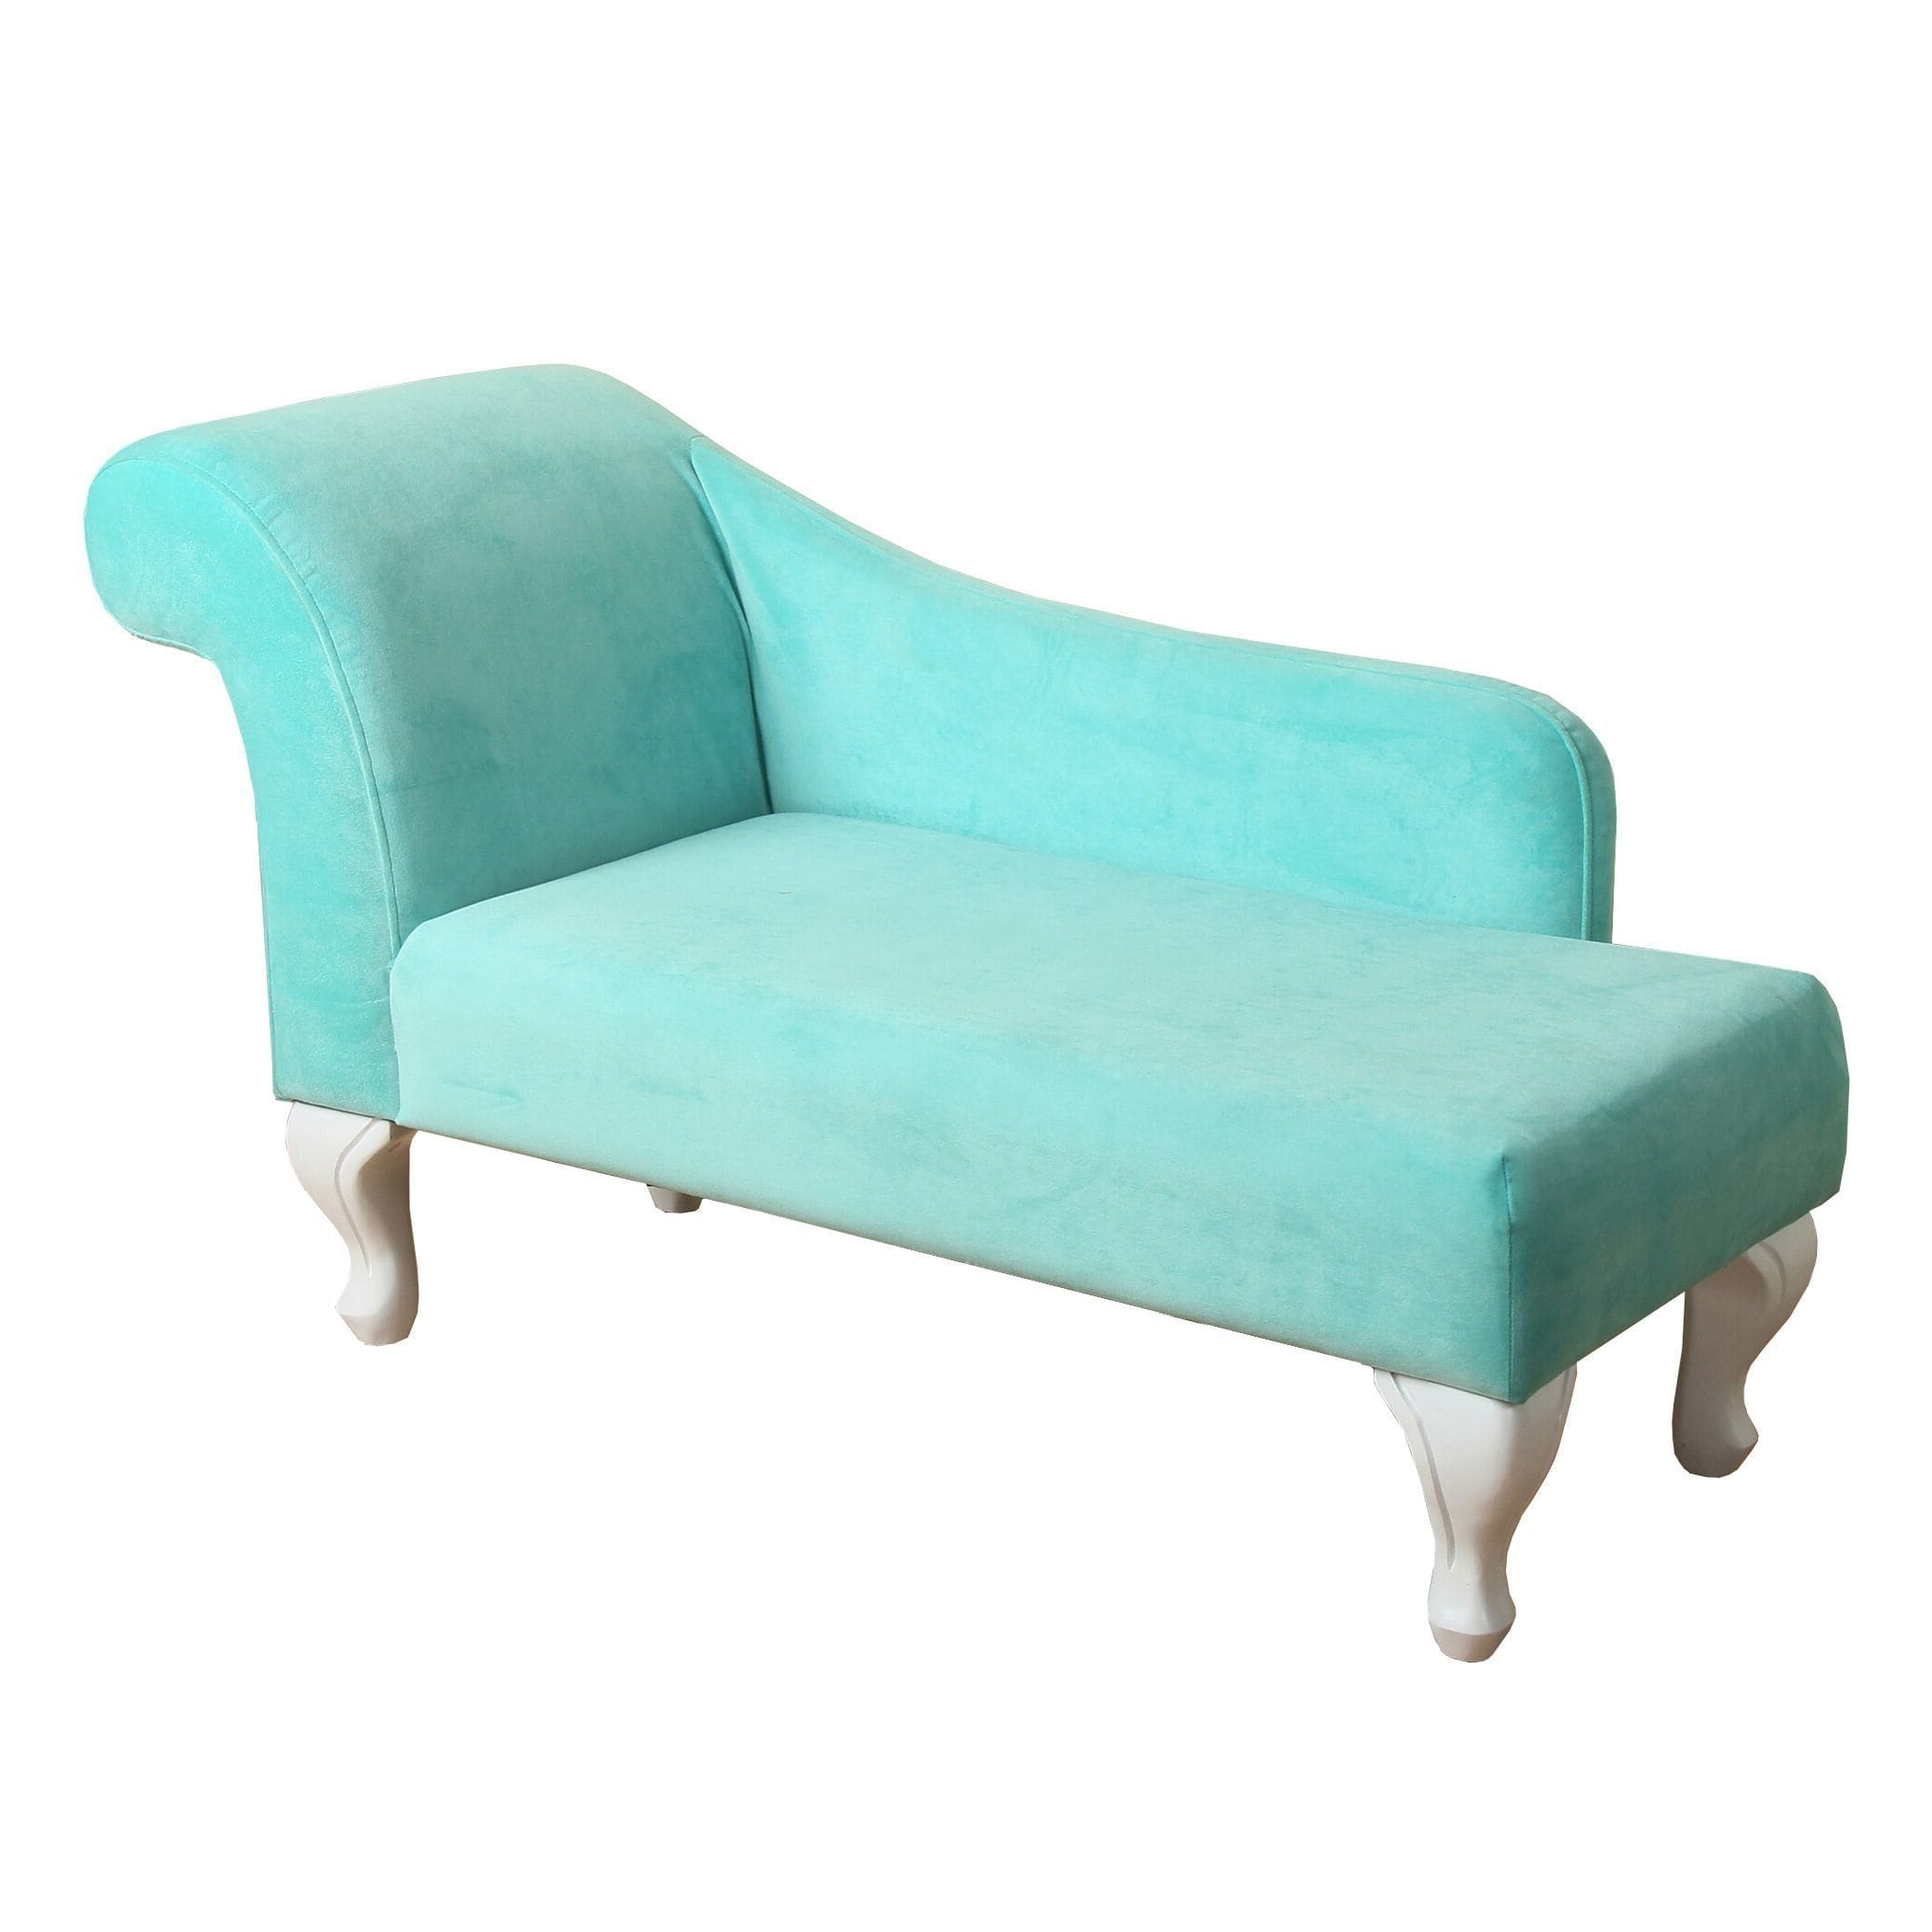 Homepop Juvenile Chaise Lounge In Aqua Turquoise Velvet – Free For Most Recently Released Turquoise Chaise Lounges (View 4 of 15)